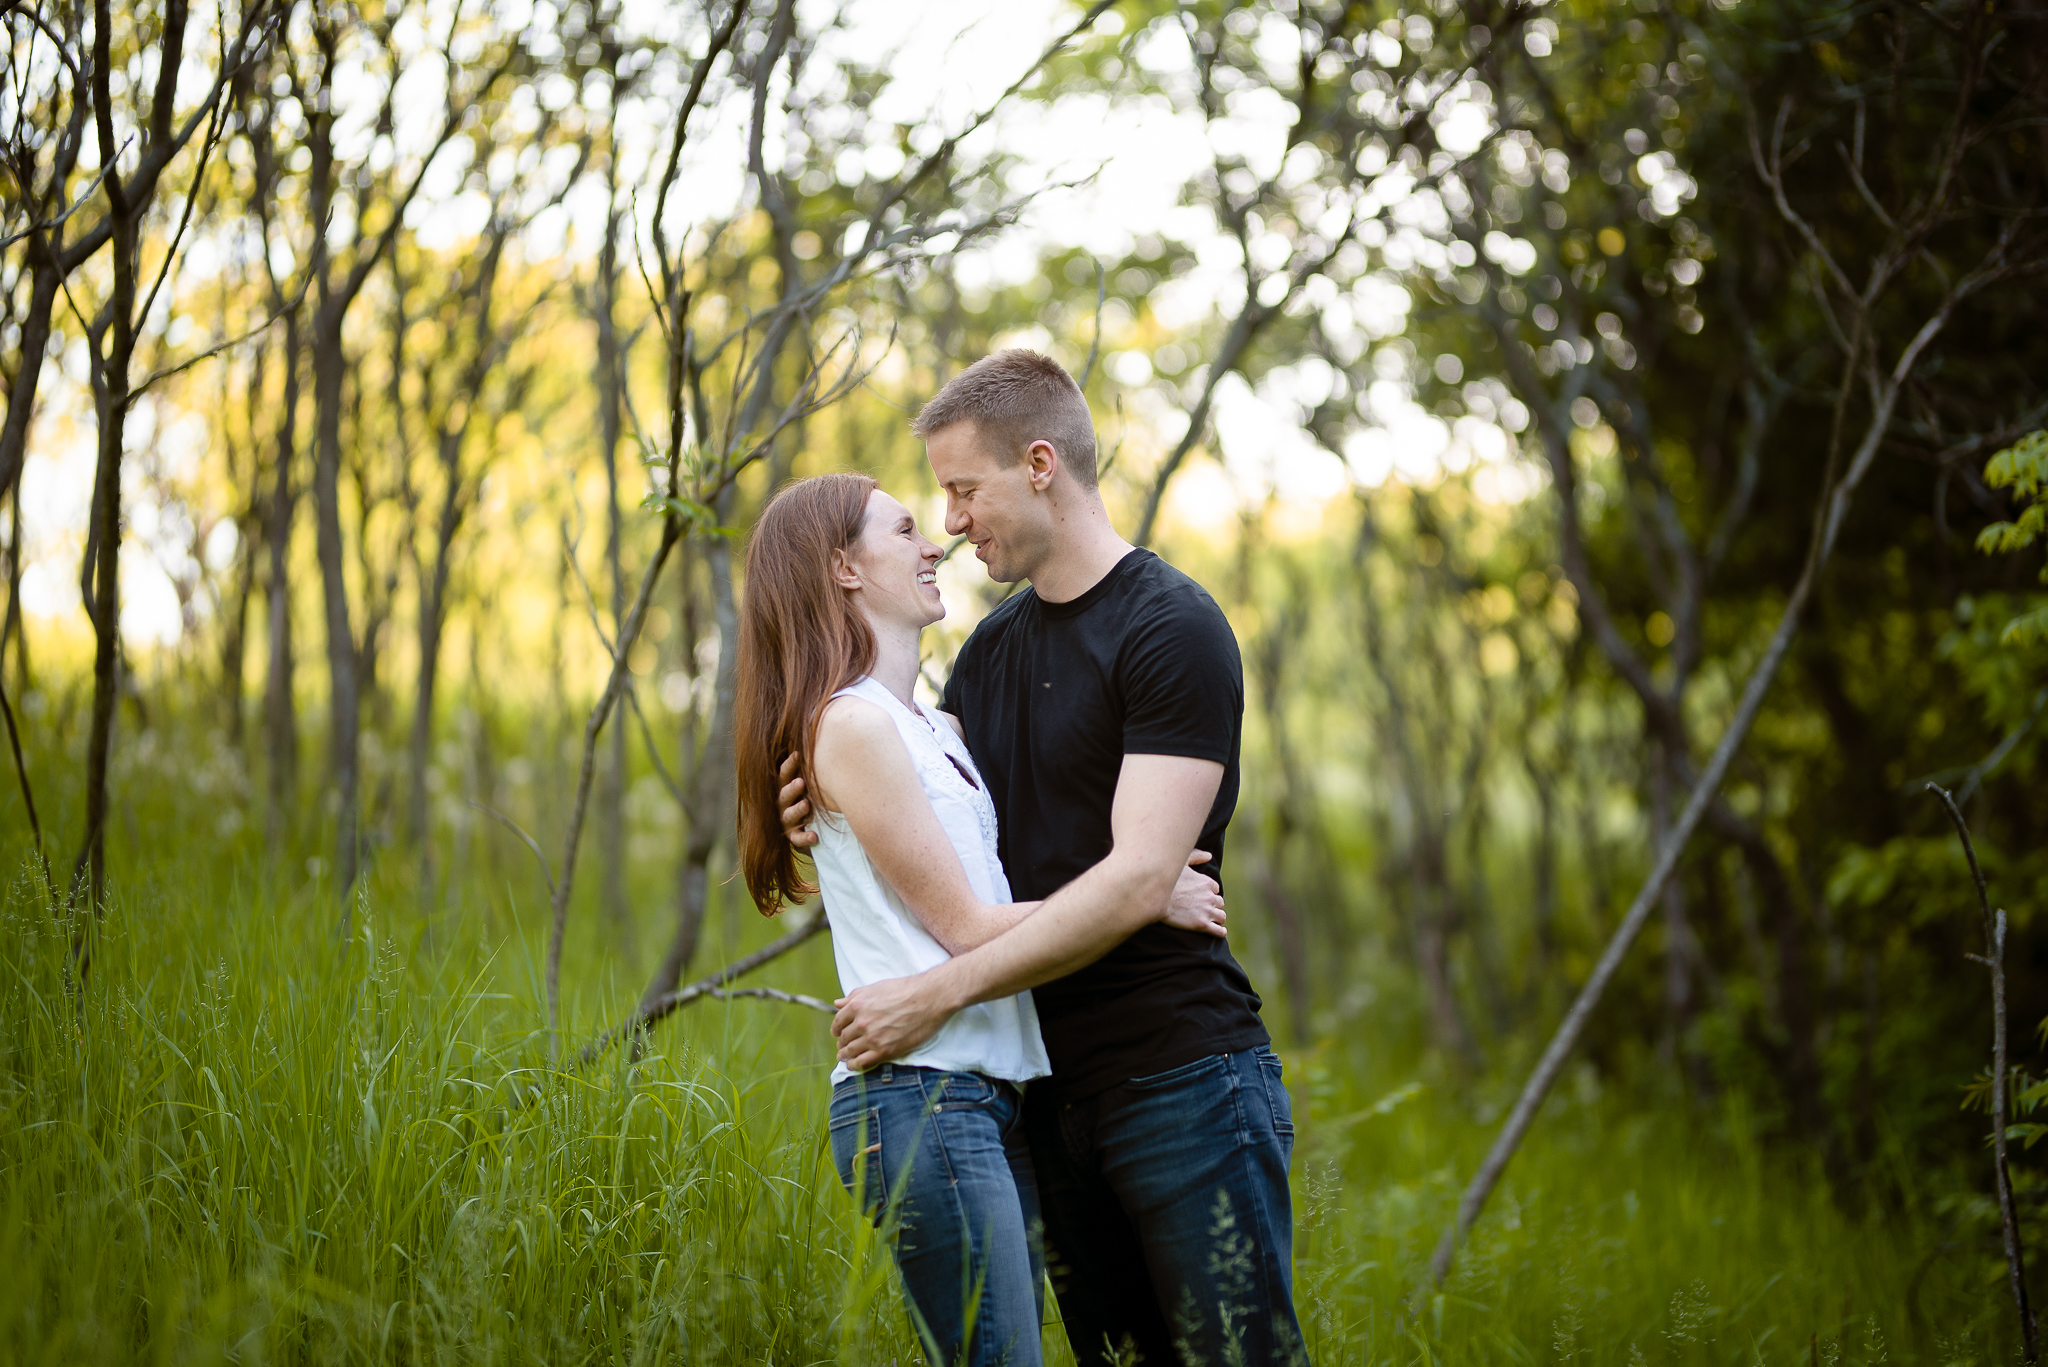 Couples135NaomiLuciennePhotography062019-5-Edit.jpg